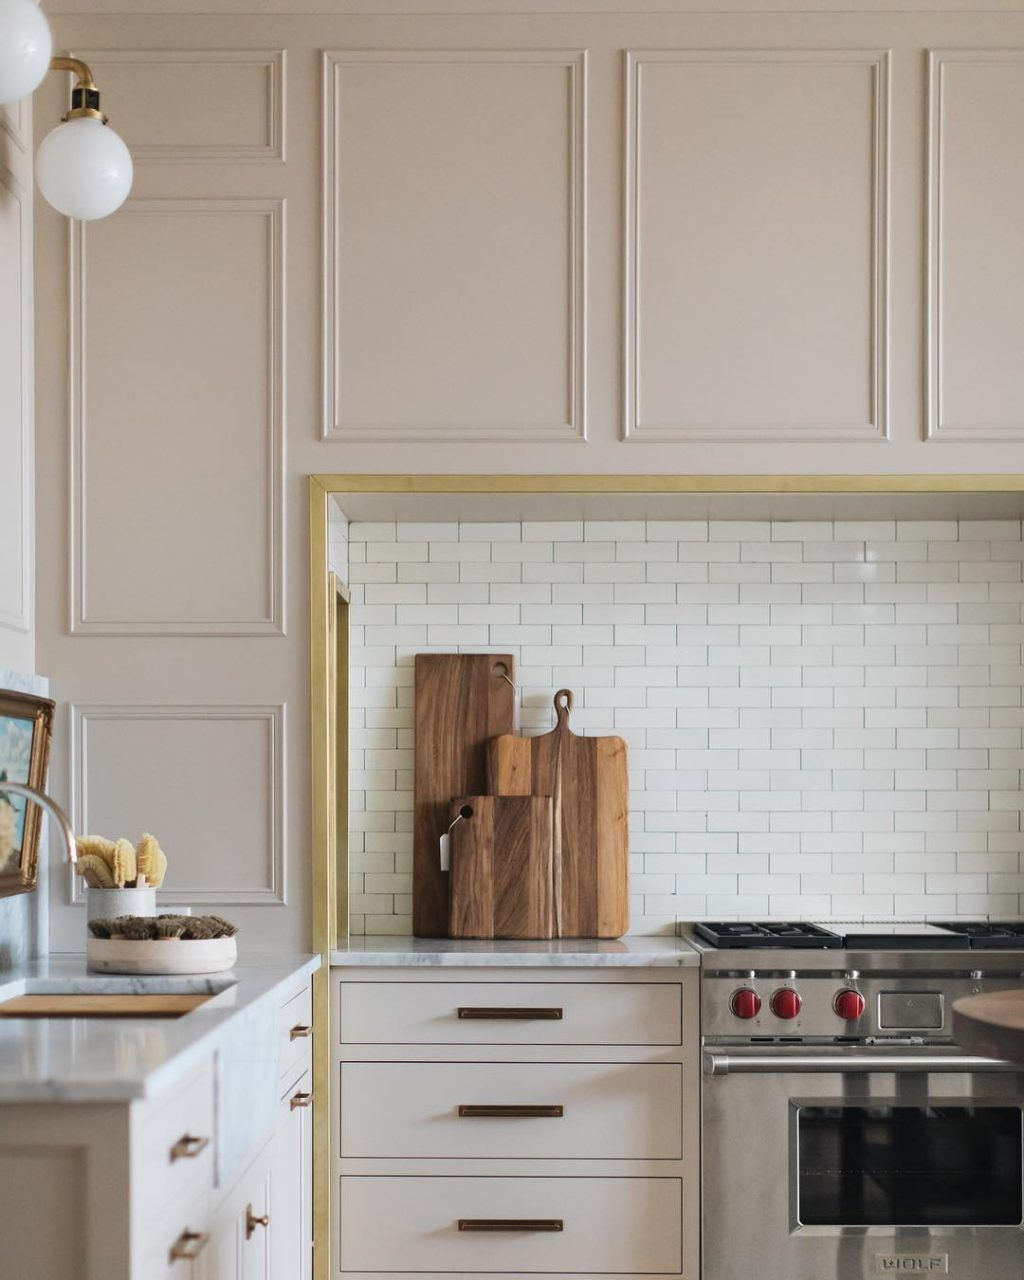 Colors We're Considering for Our Phase 1 Kitchen Cabinets ...